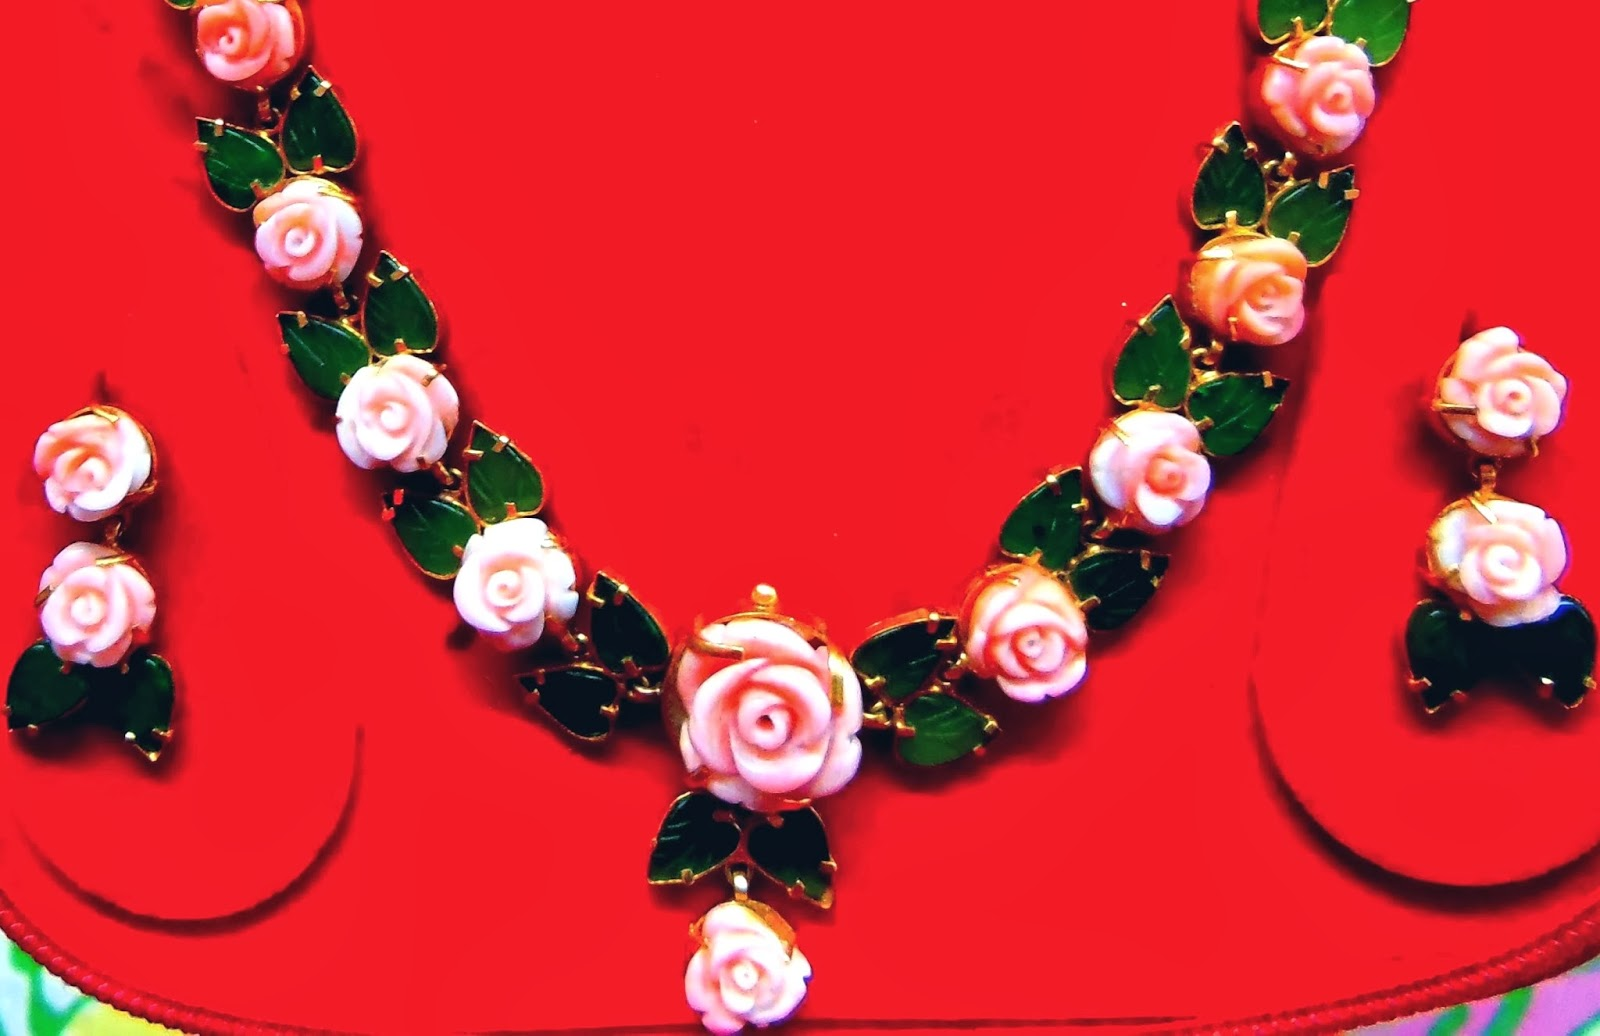 Fashionable n Chic: Coral Flower and jade leaf necklace set